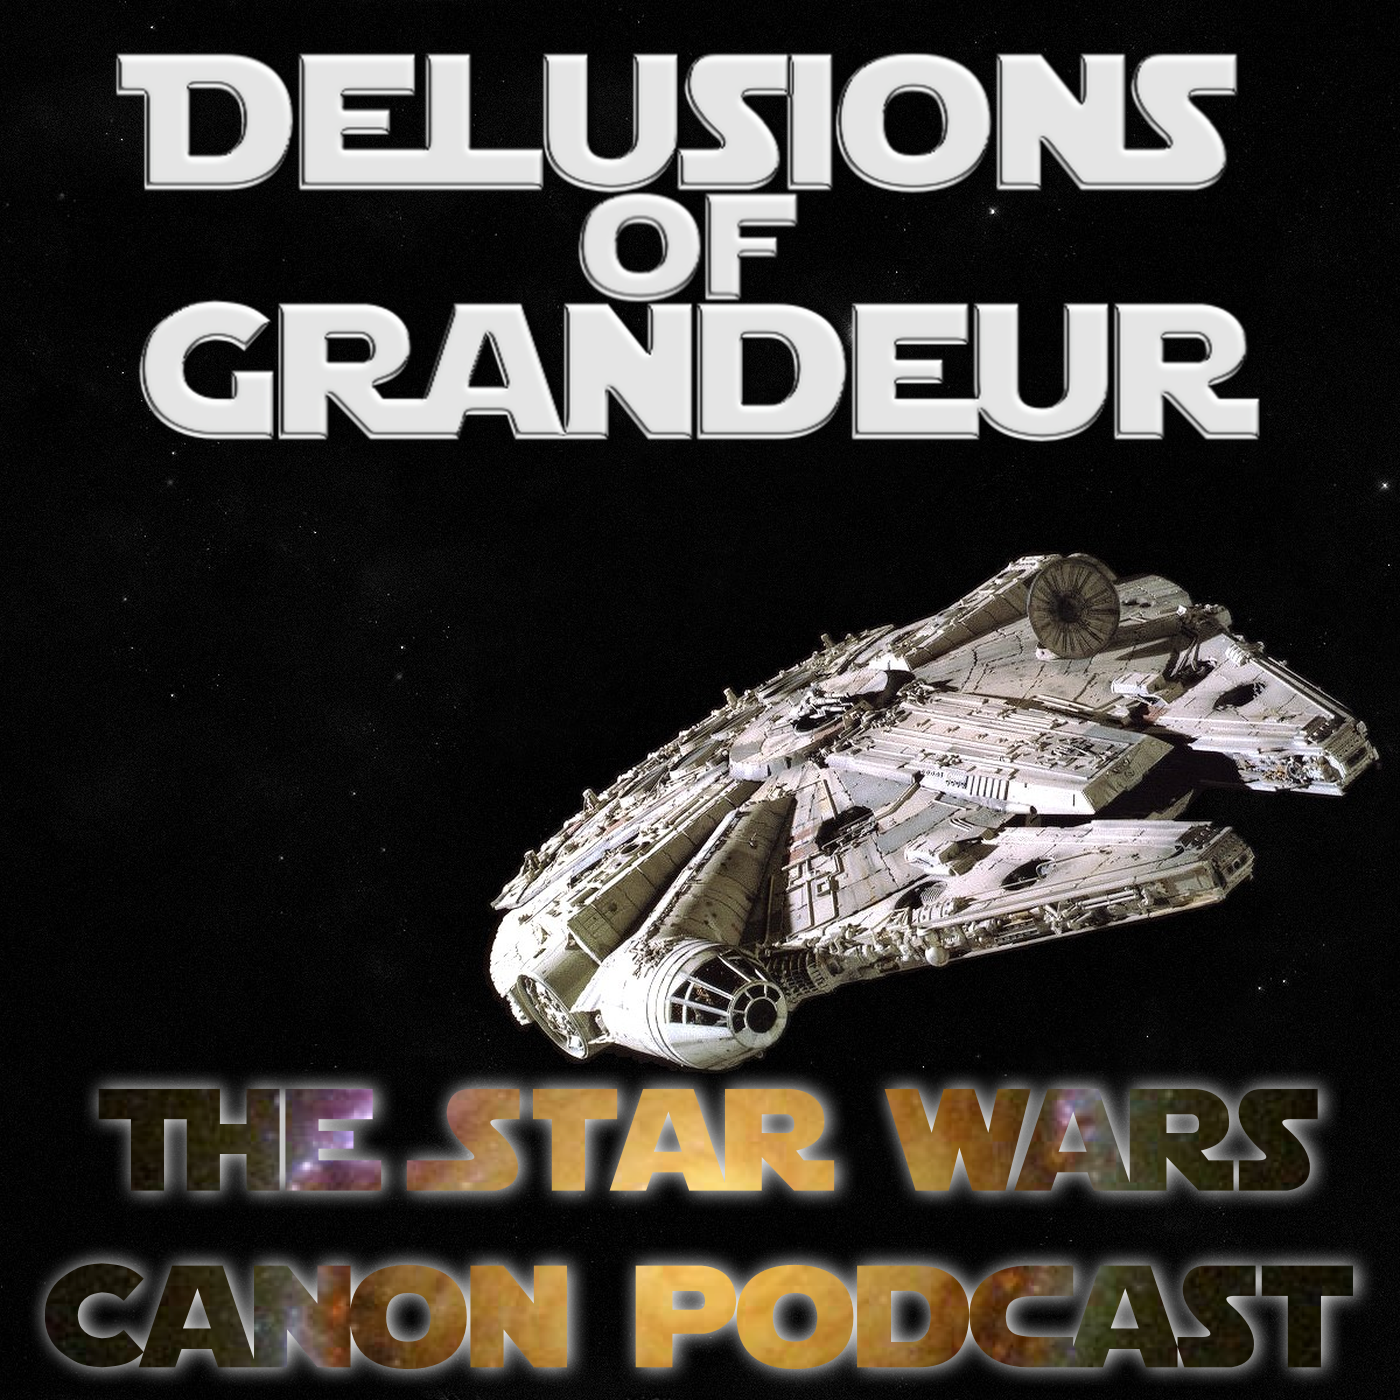 Delusions of Grandeur: The Star Wars Canon Podcast